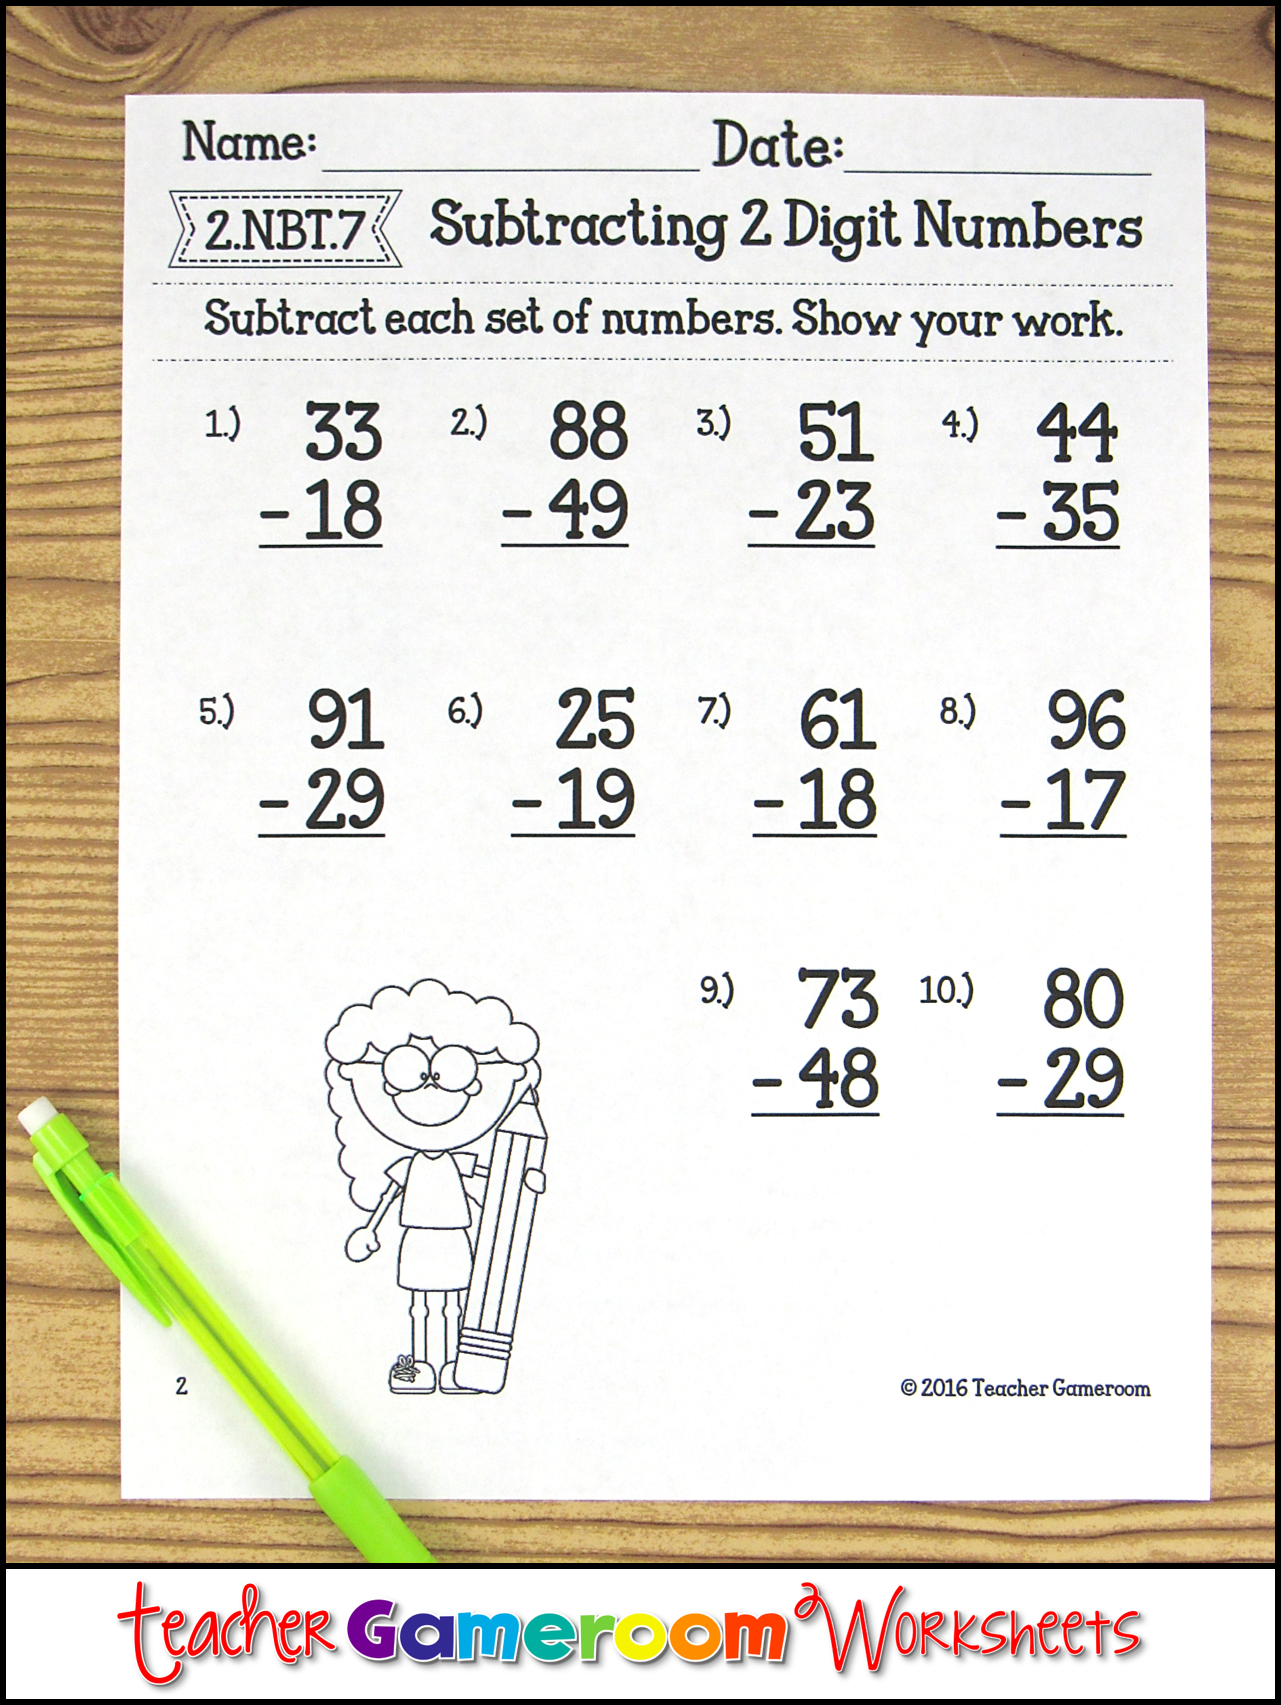 Subtracting 2 Digit Numbers Worksheets